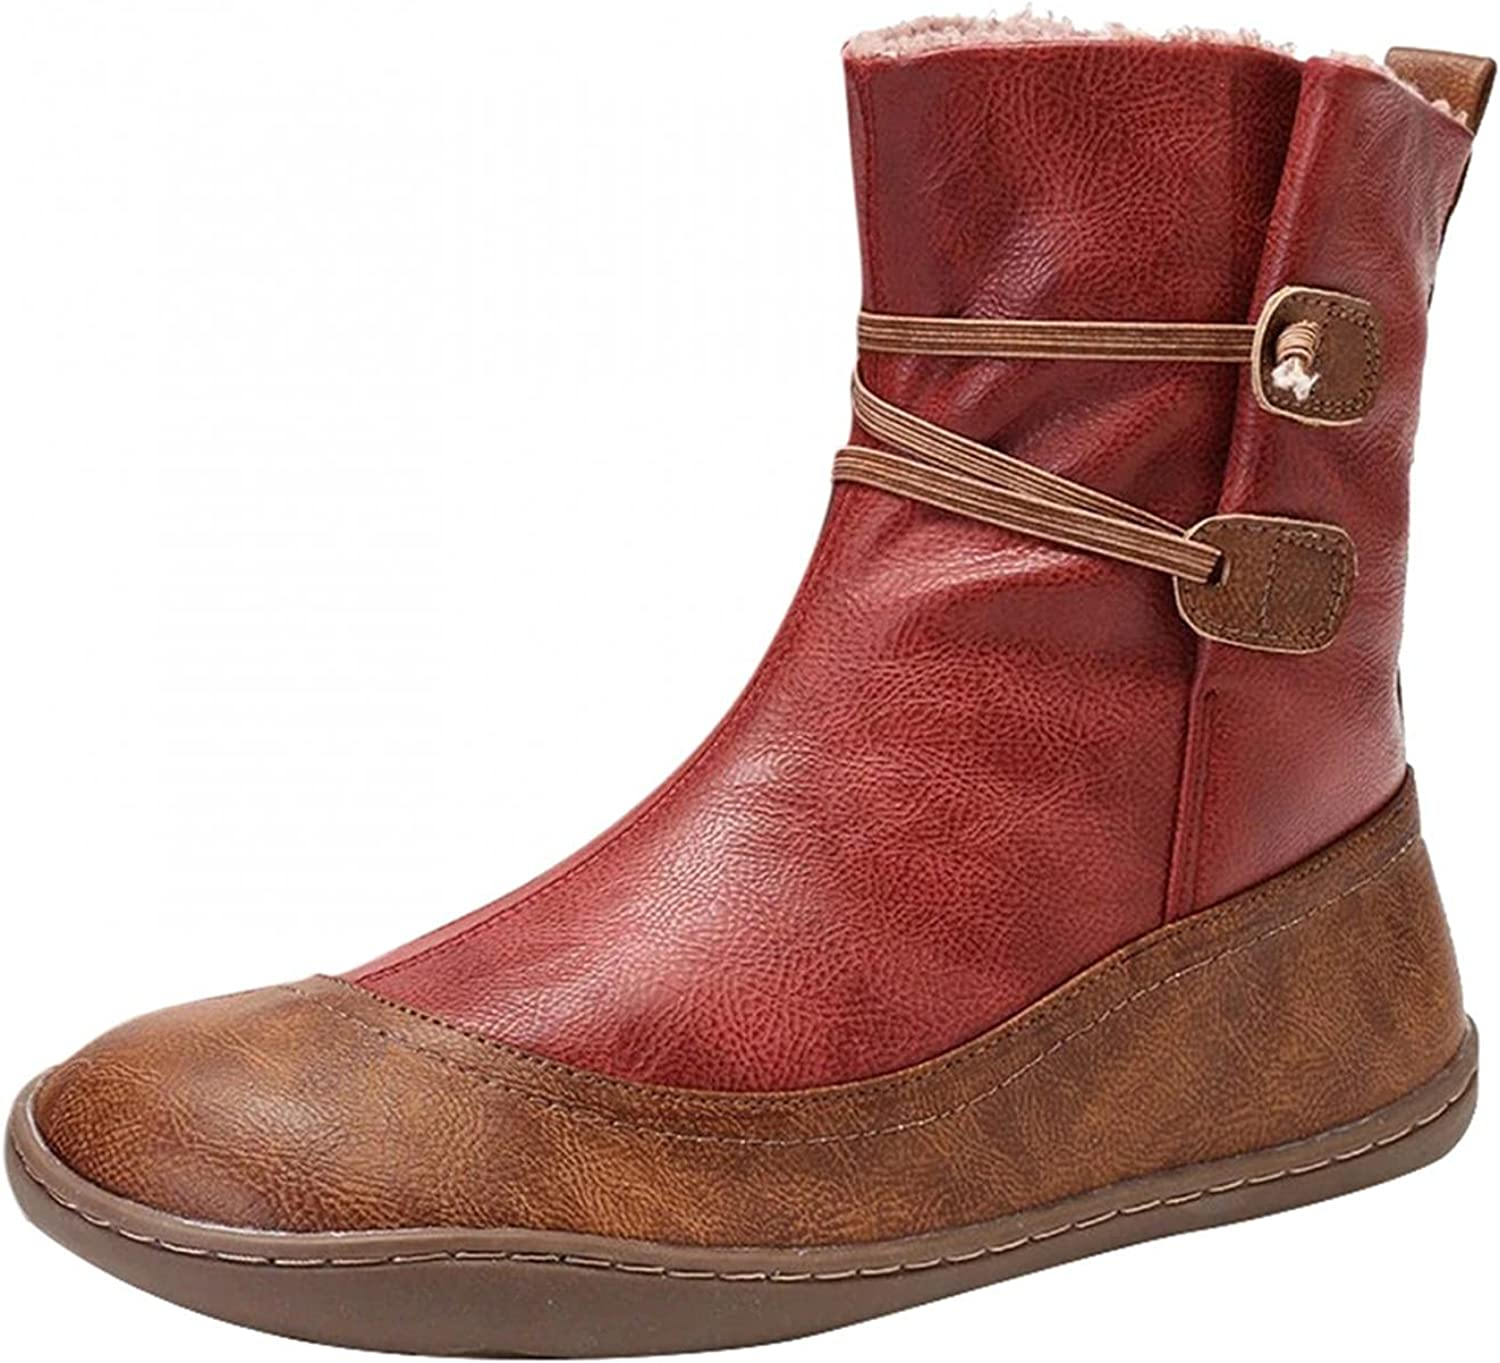 Zieglen Women's Winter Boots, Women's Boots with Leather Non Slip Flat Short Boots Western Boots Snow Boots Motorcycle Boots